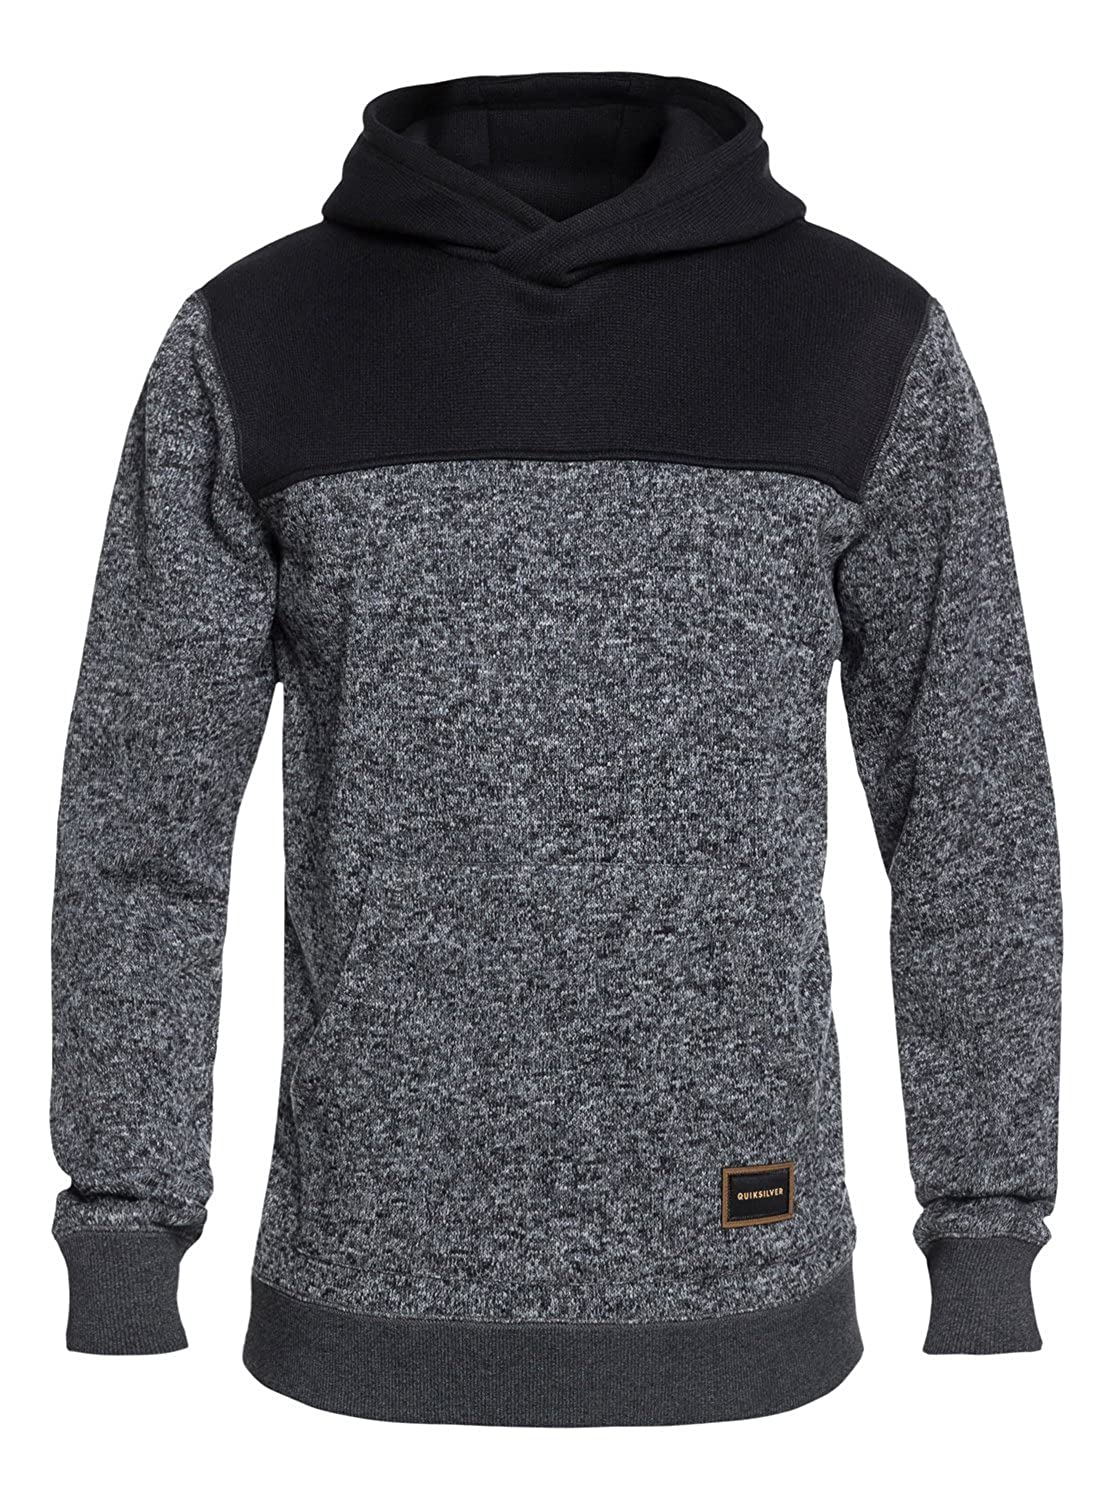 1564c5ef72c946 Amazon.com  Quiksilver Men s Keller Block Hood Fleece Pullover  Clothing